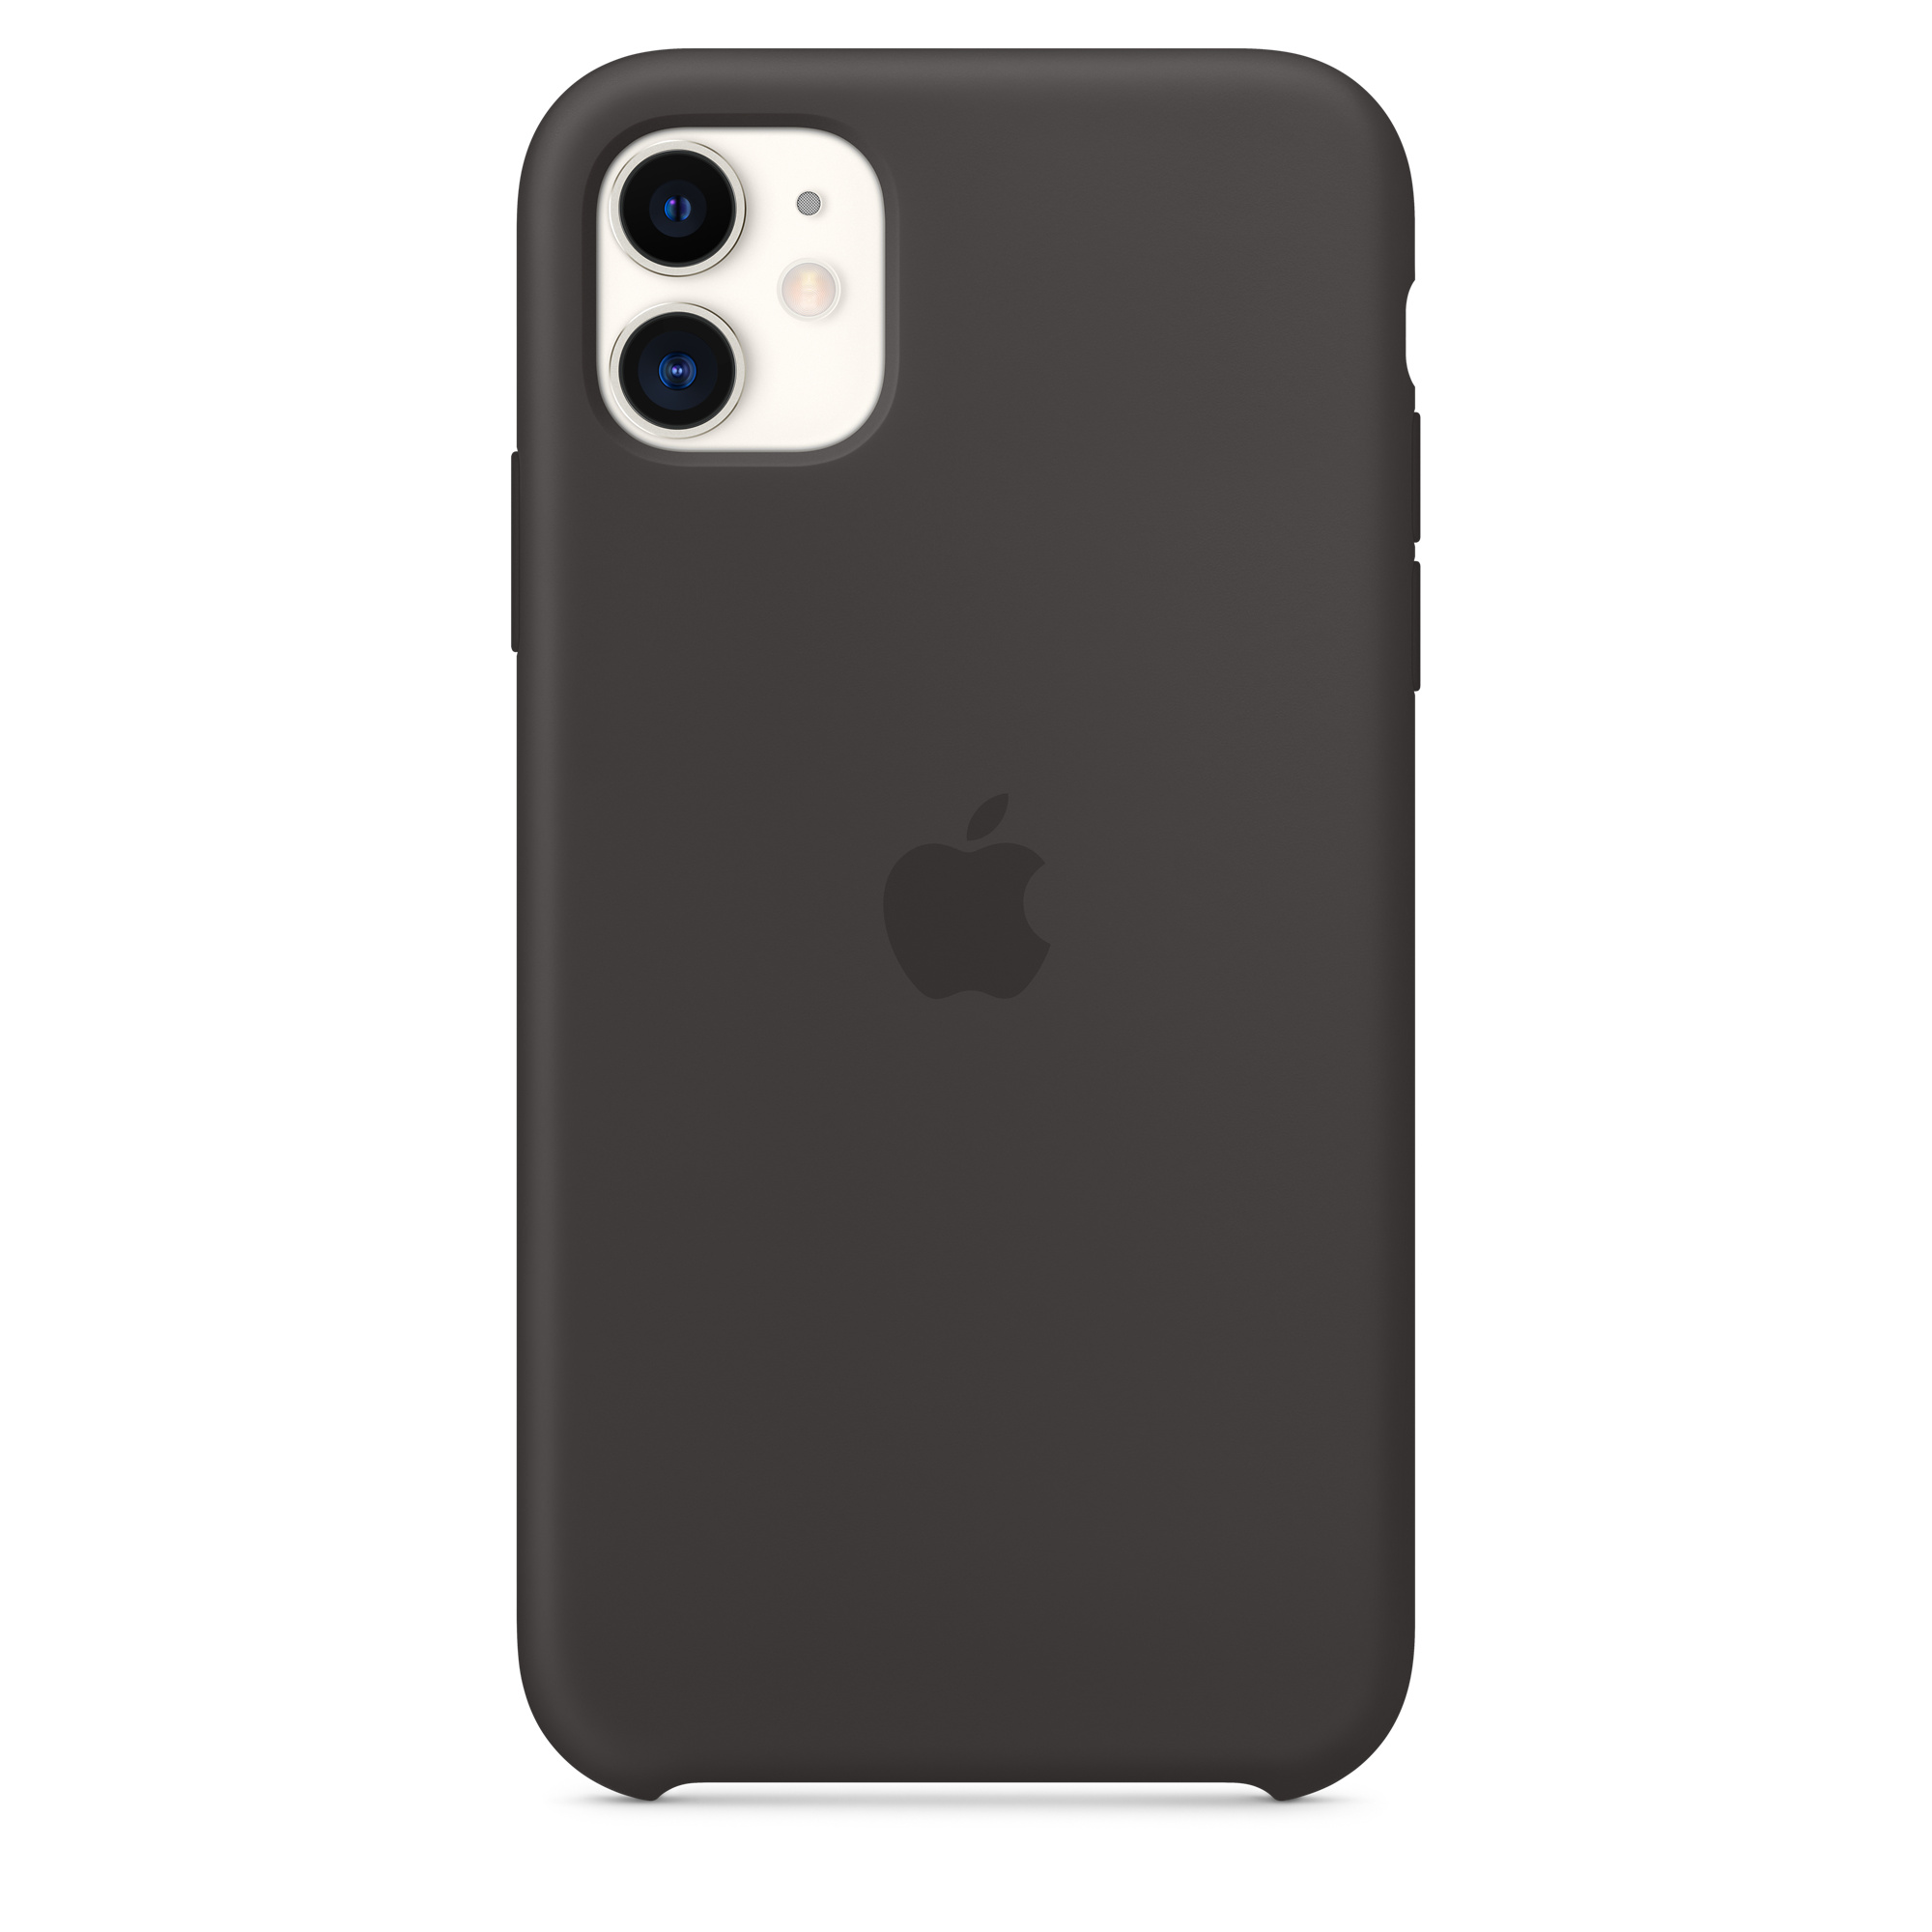 The thing iPhone 11 case